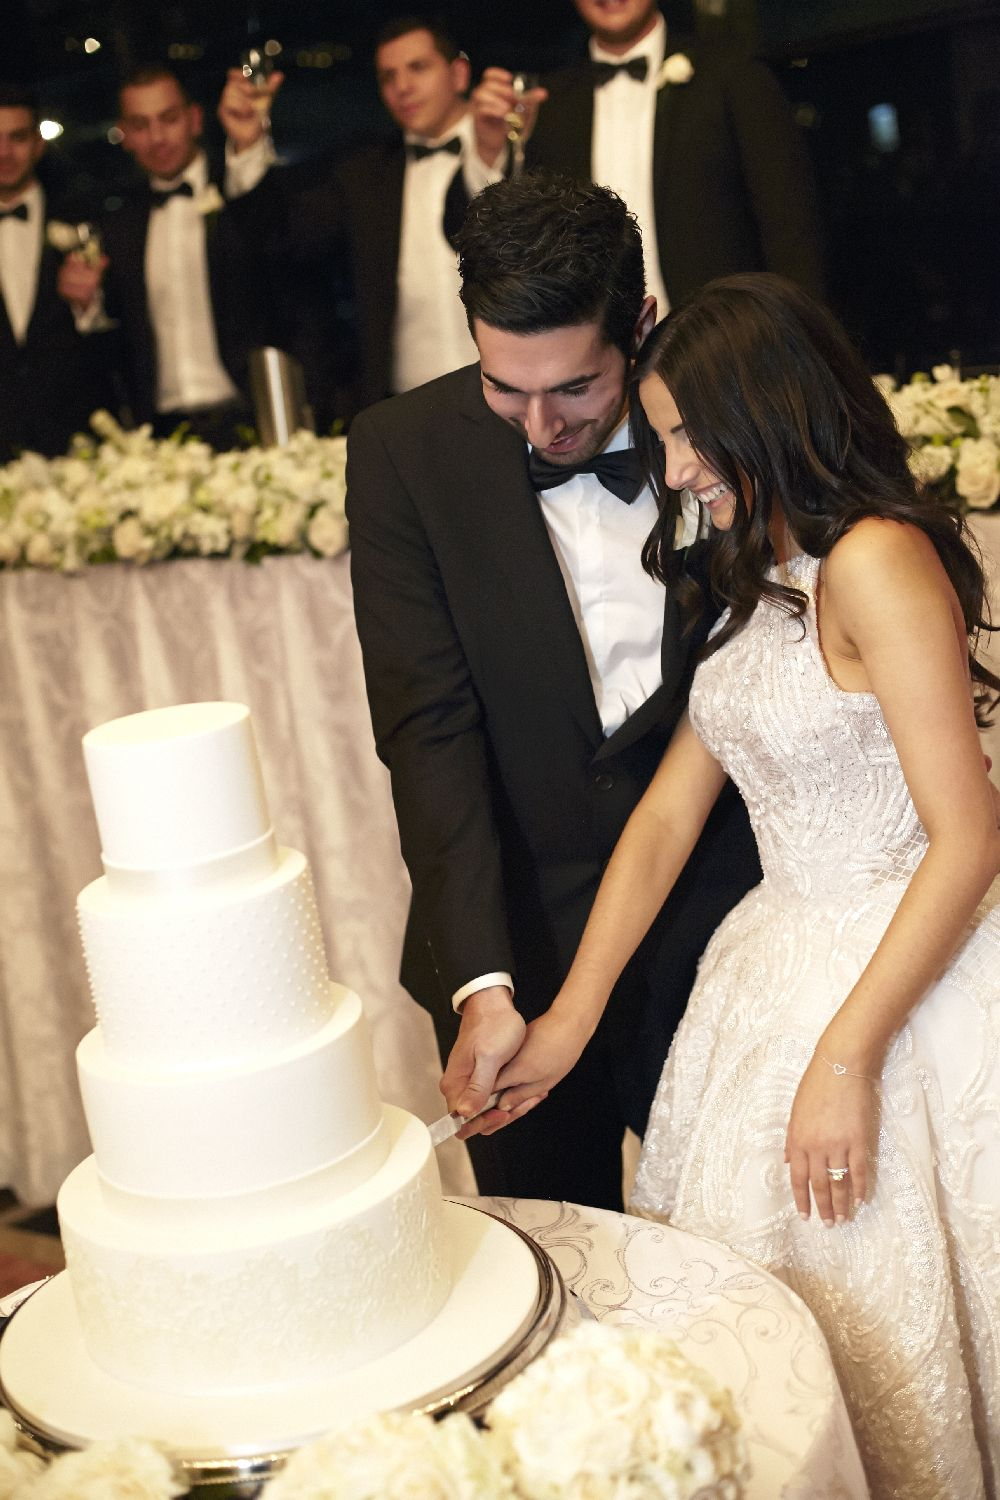 J'Aton wedding dress,Wedding Reception - cutting wedding cake | itakeyou.co.uk